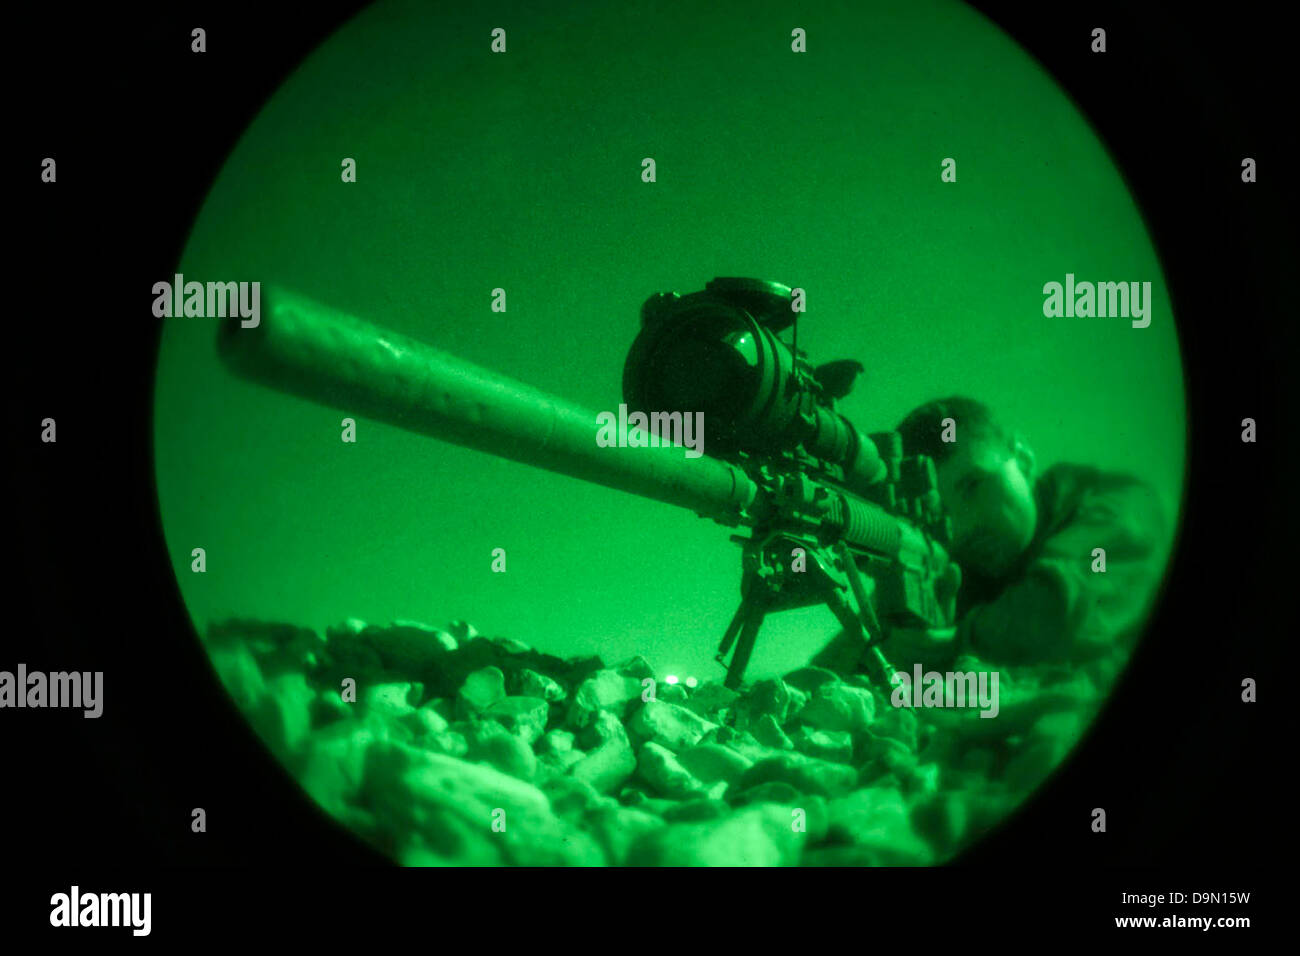 A US Maritime Raid Force Marine fires an M110 Semi-Automatic Sniper rifle captured with night vision during a nighttime - Stock Image